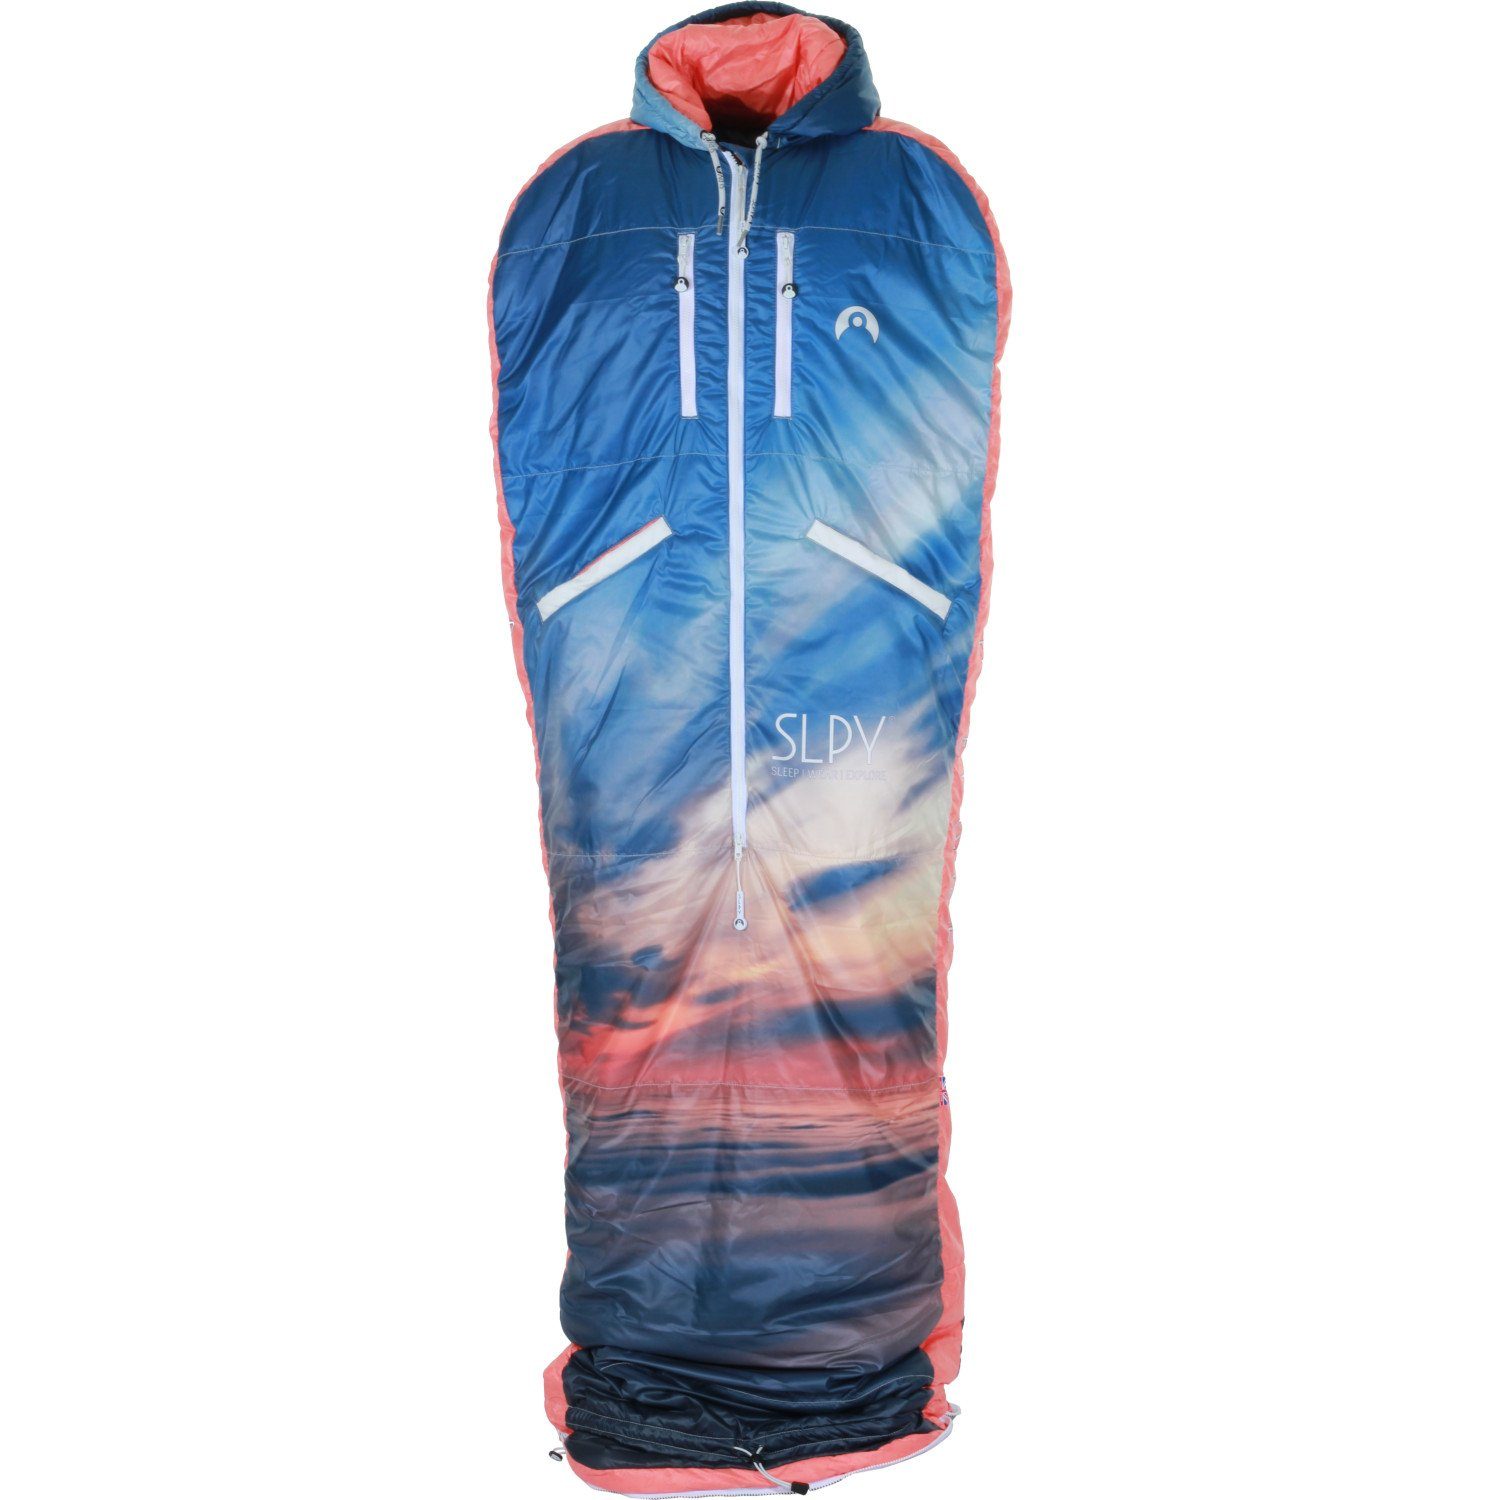 SLPY The新しいウェアラブルSleeping Bag – Sleepy Large Above the Clouds B01IGOINT6